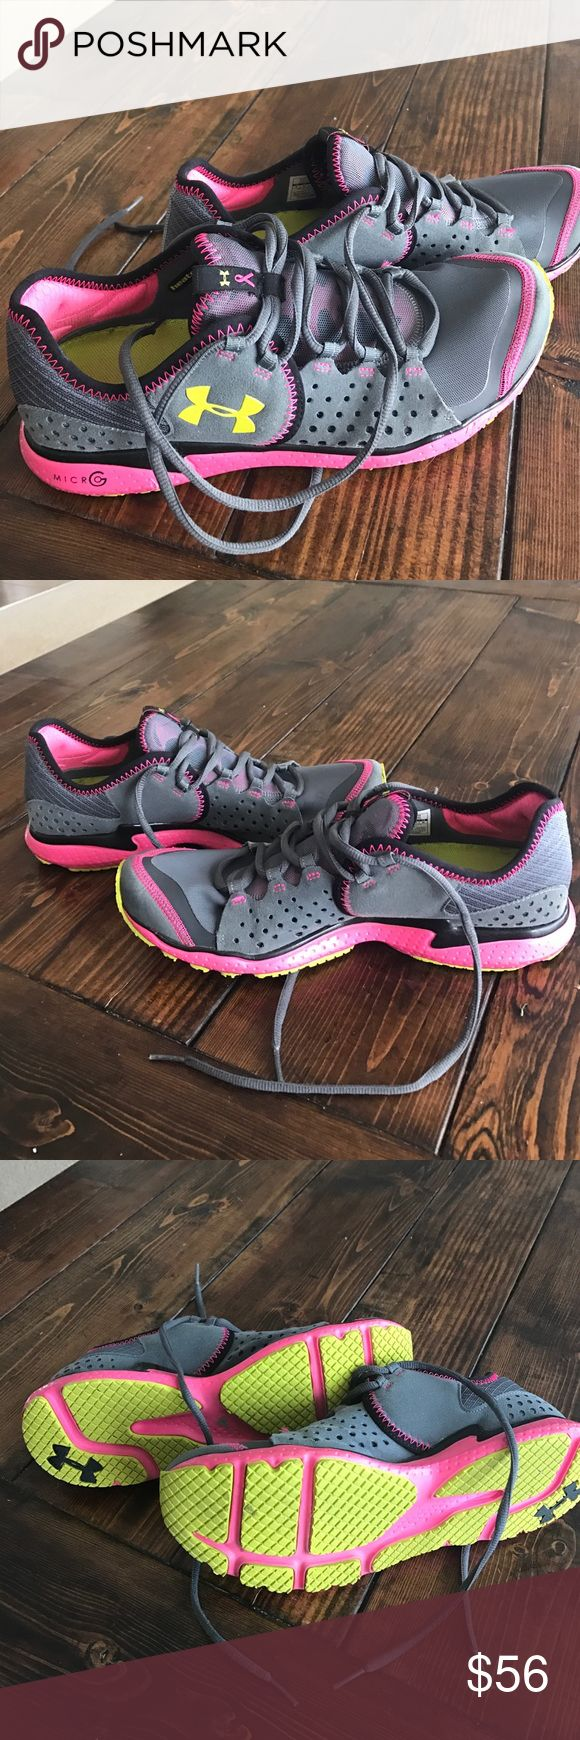 Under Armour tennis shoes Lightly worn Under Armour tennis shoes. Worn maybe 5 times before I had a baby and now they are to small. Super cute shoes! Under Armour Shoes Athletic Shoes